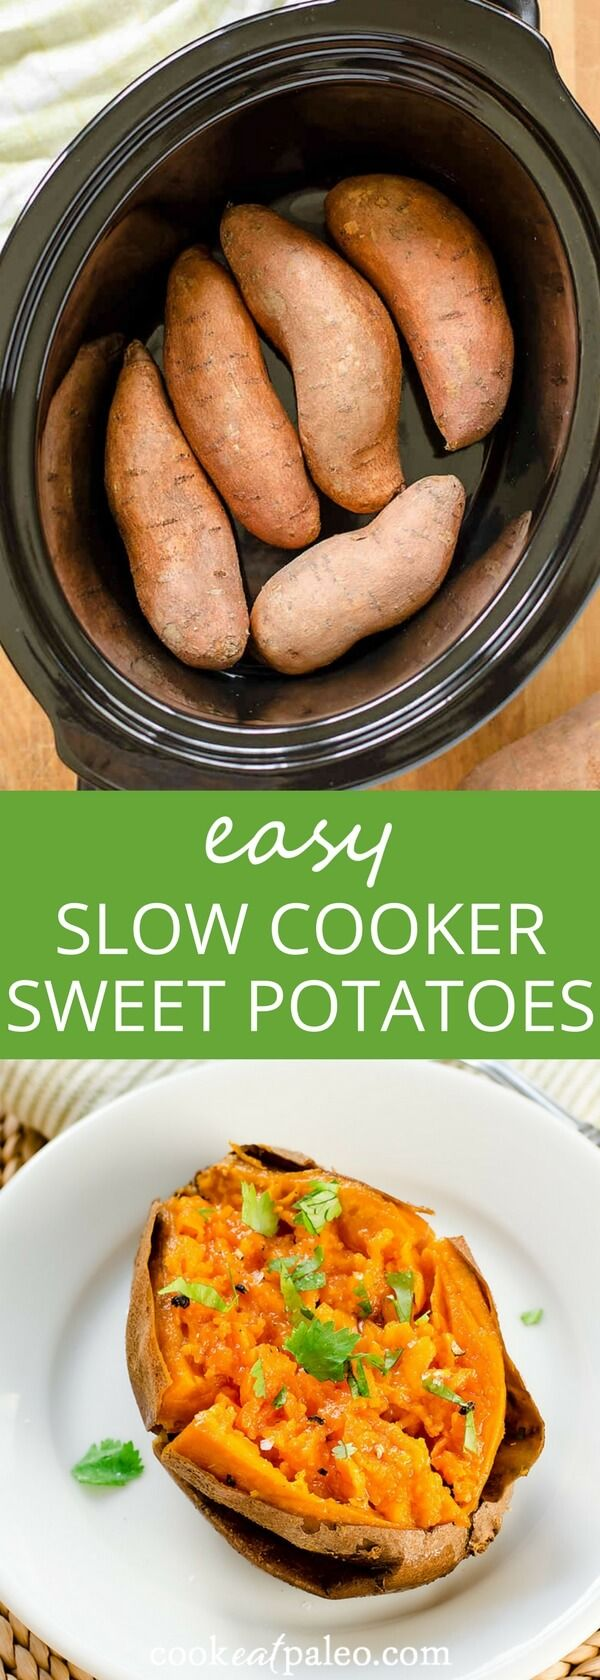 How To Bake Sweet Potatoes In A Crock Pot Recipe Cooking Sweet Potatoes Slow Cooker Sweet Potatoes Recipes